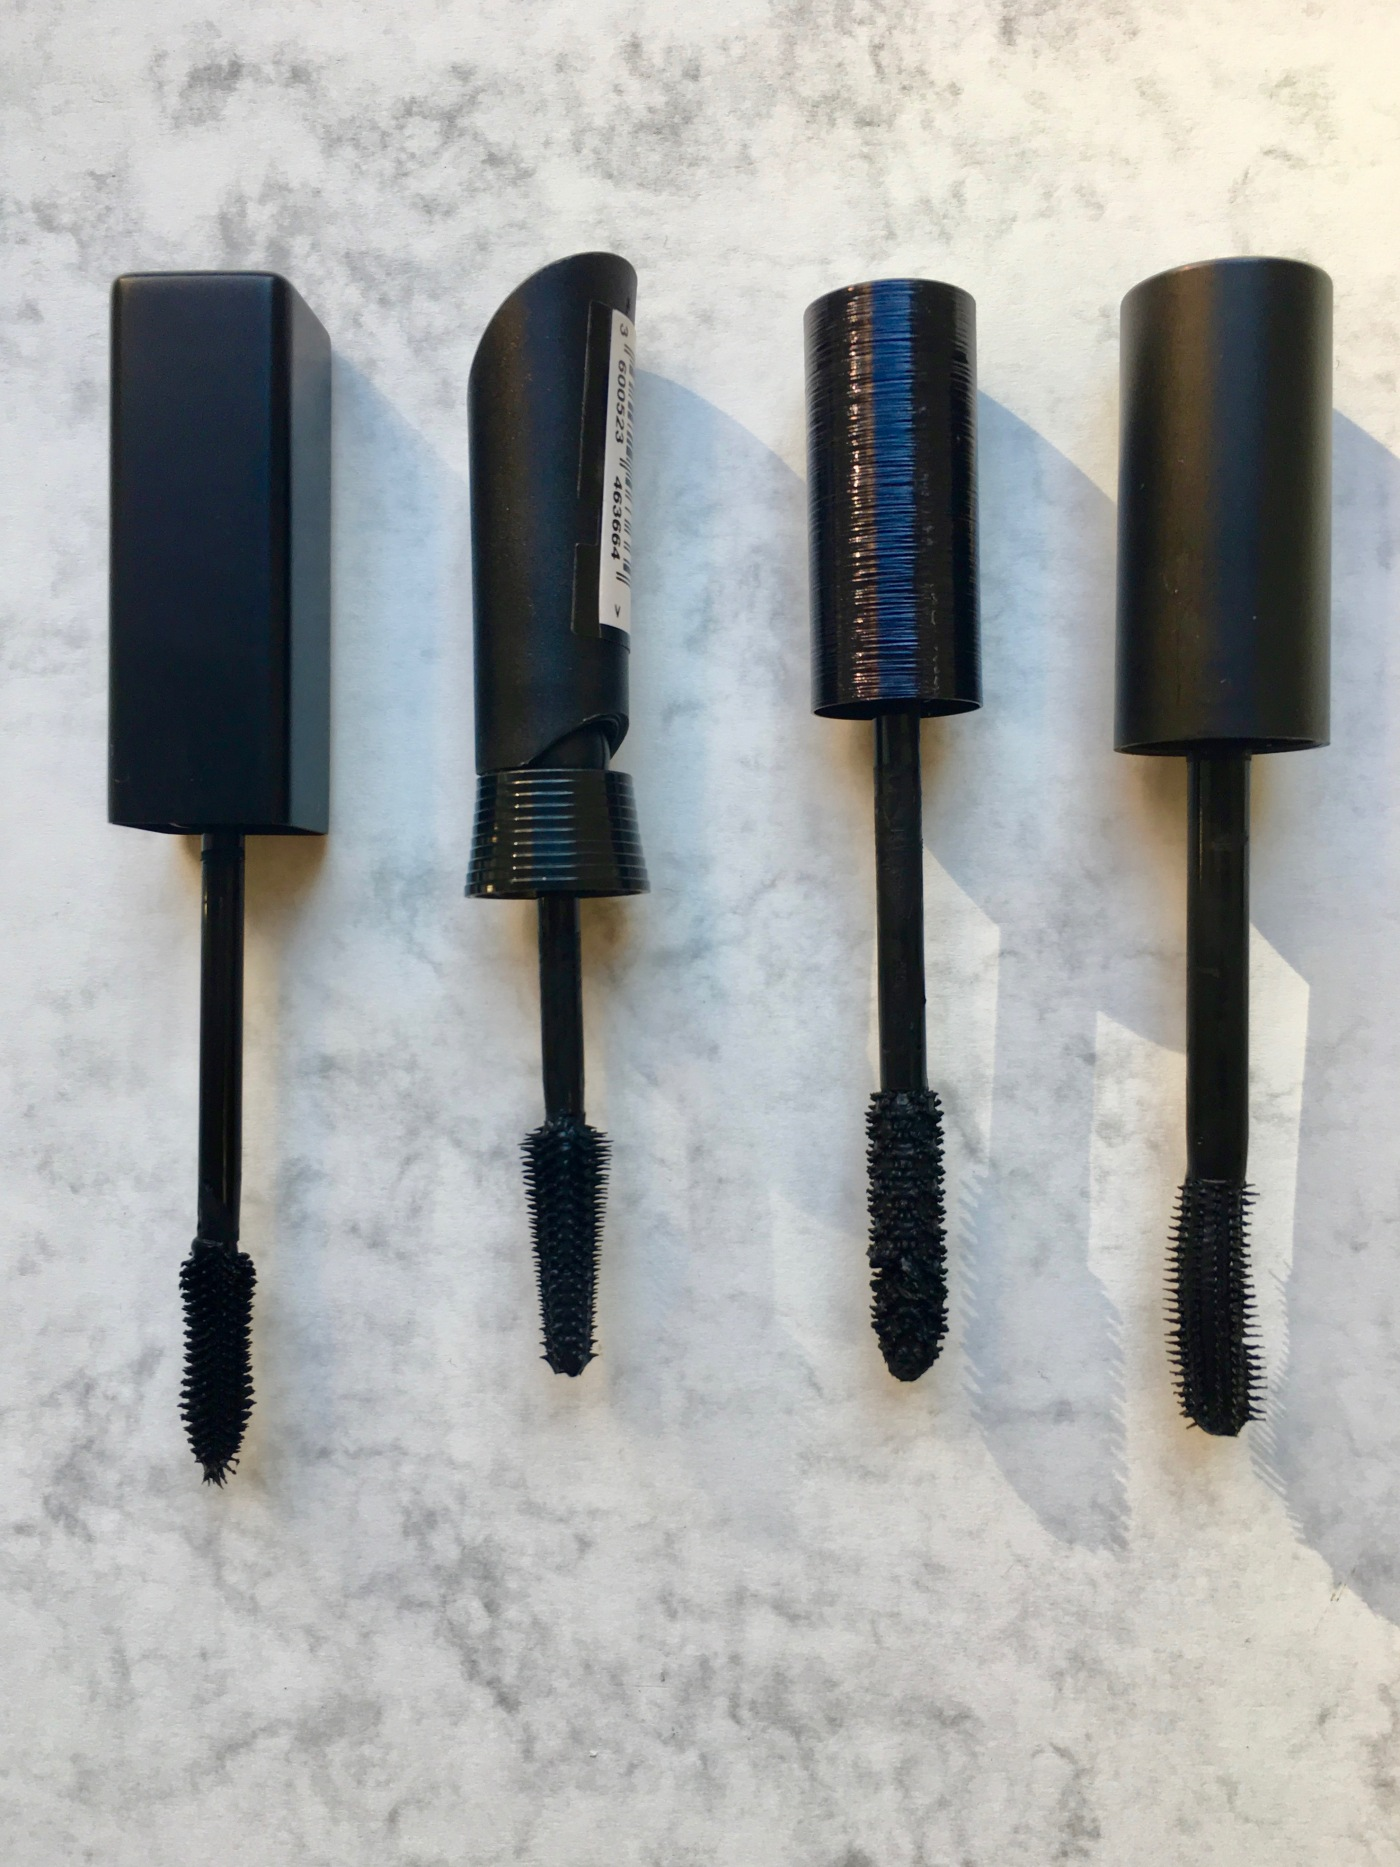 ultimate mascara l'oréal shiseido le volume révolution chanel scandal extreme lash mascara be creative makeup